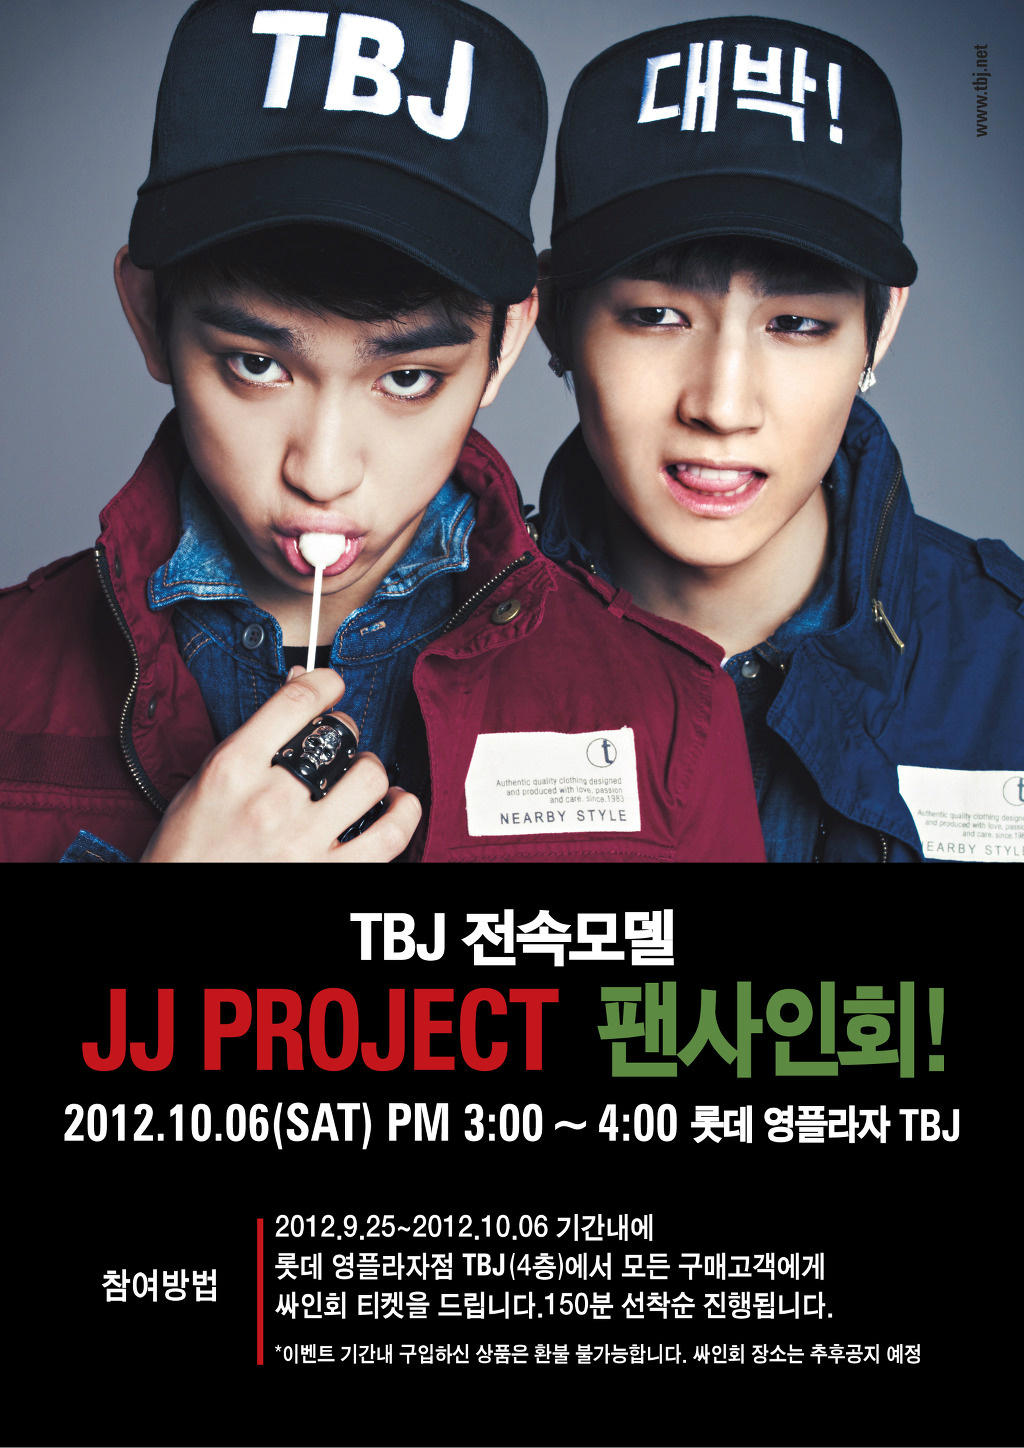 [JJ Project's Autograph Meeting] Meet JB & Jr. on Oct. 6th from 3pm - 4pm @ Lotte Young Plaza TBJ ♥ Spread the words! http://t.co/sIjIxgwF